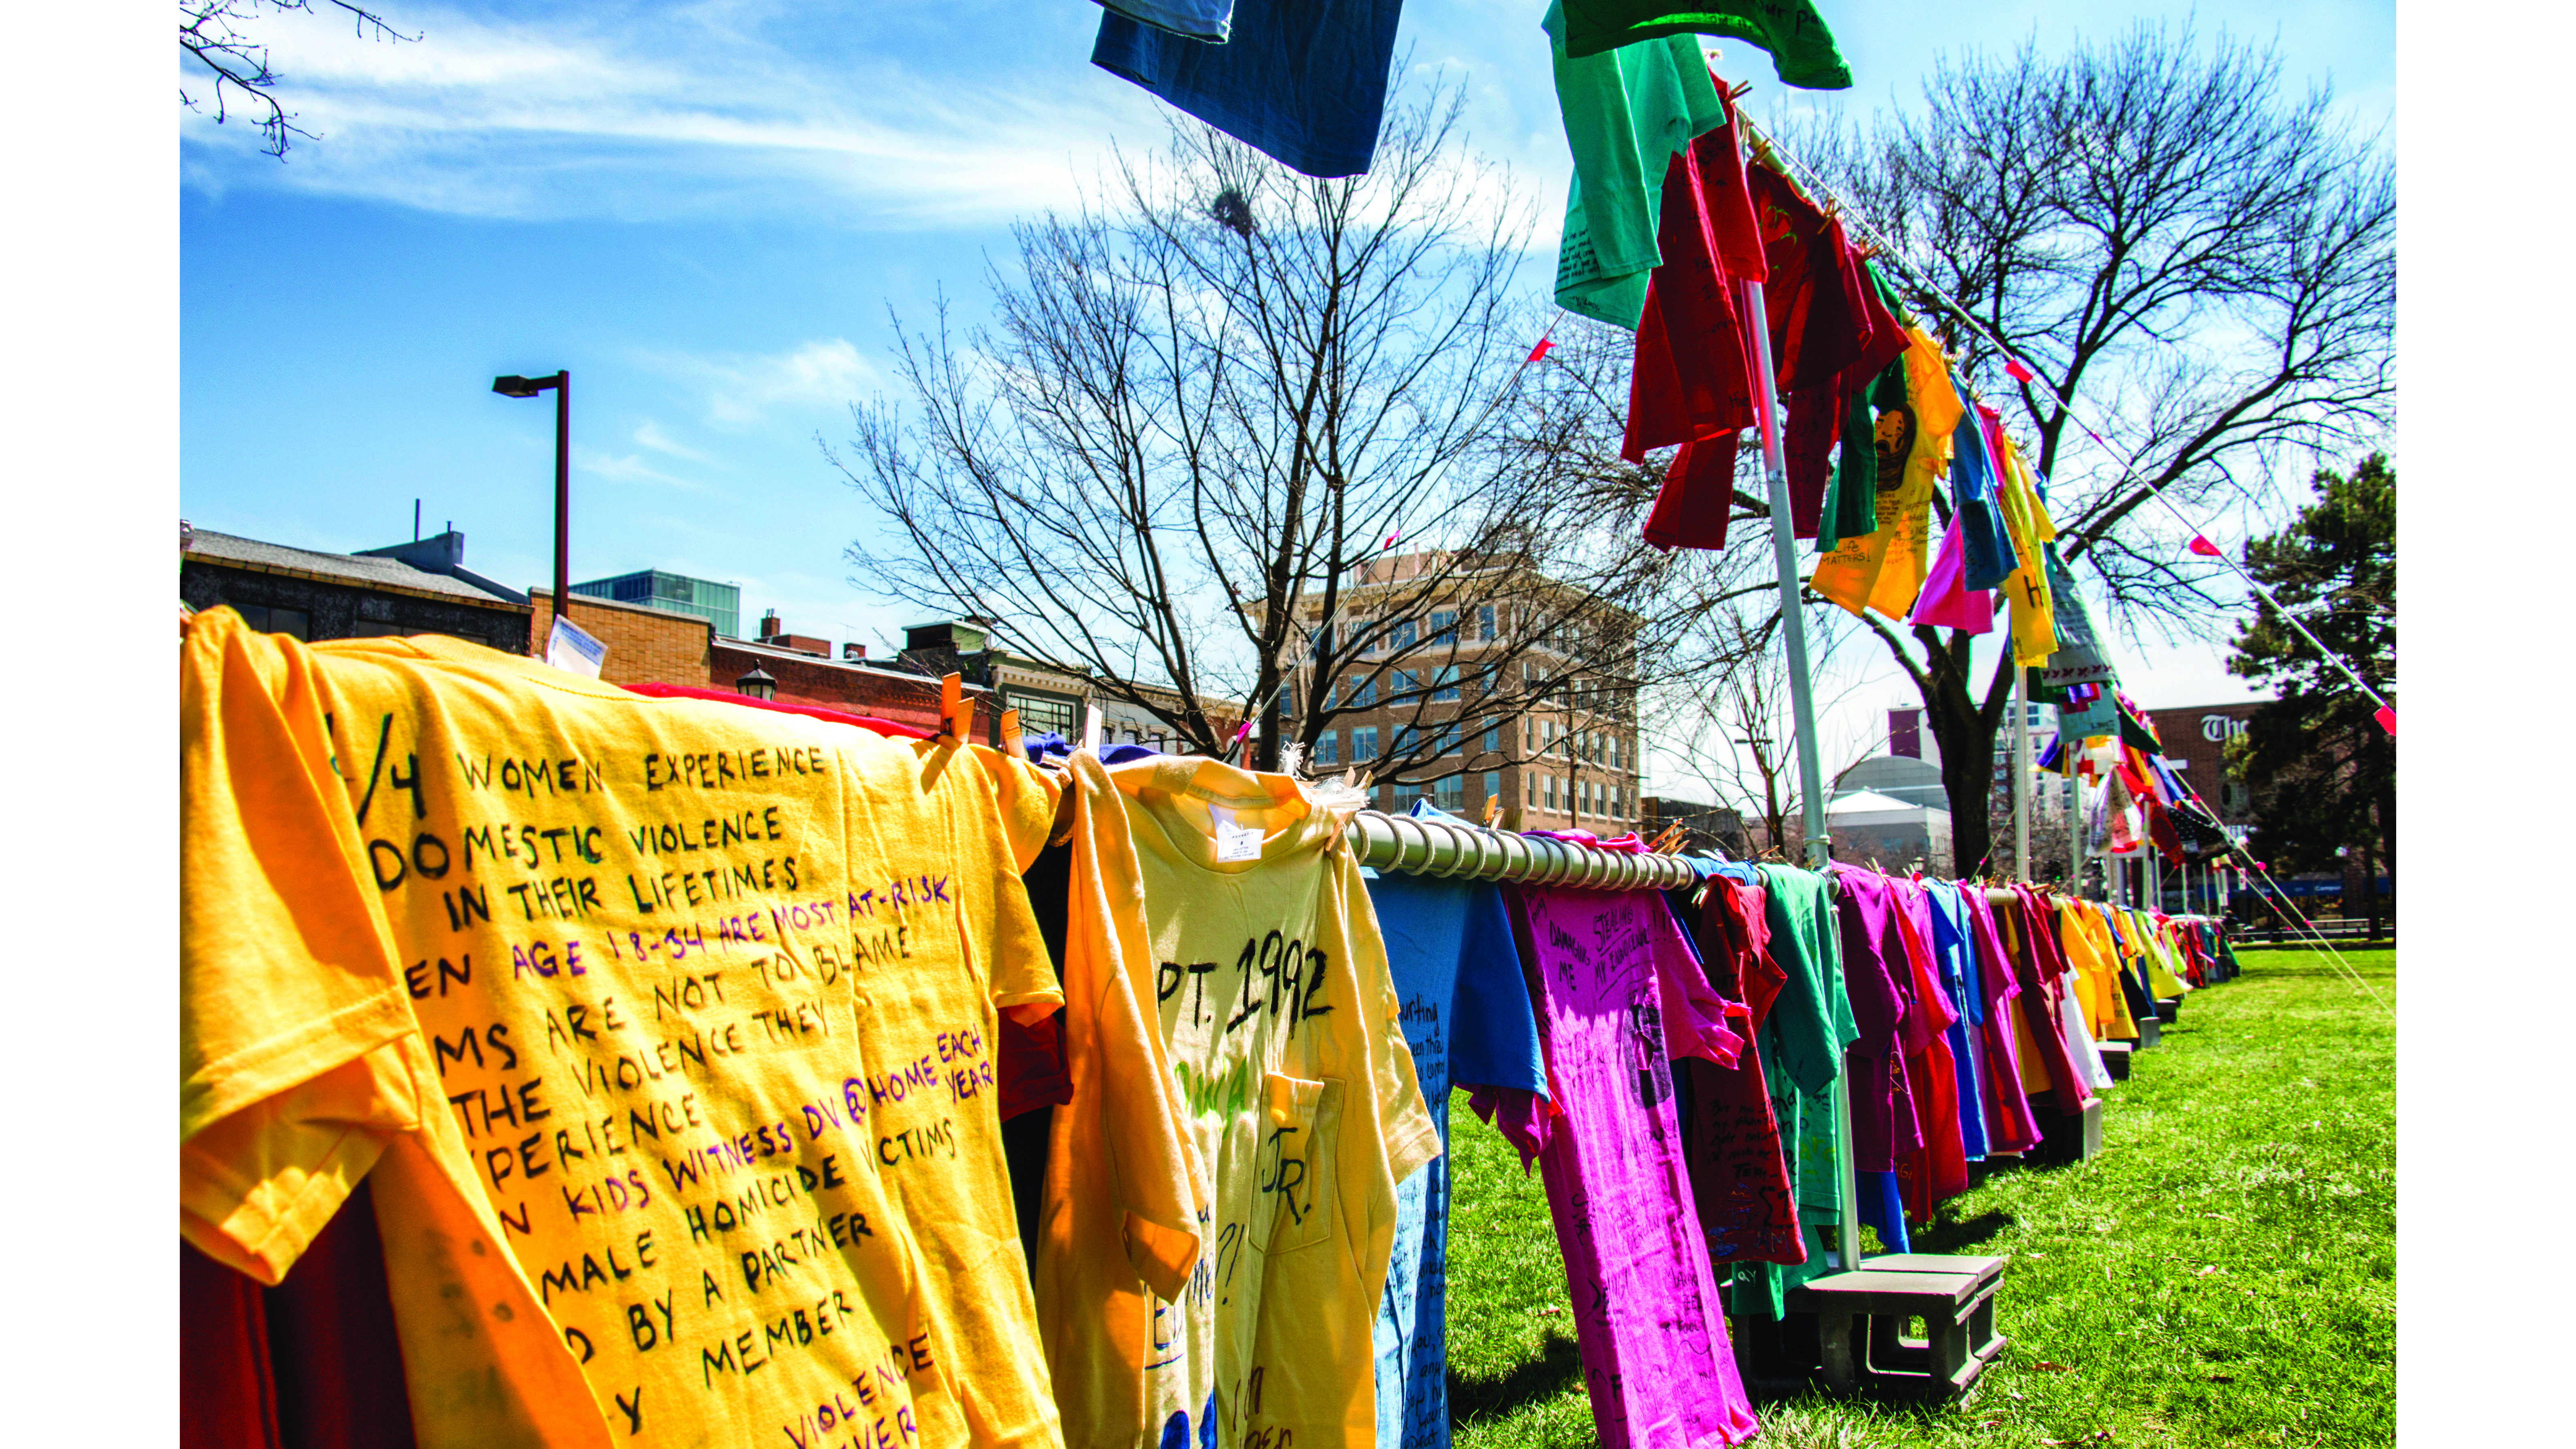 T-shirts hang outside during the RVAP Clothesline Project at the Pentacrest on April 25, 2018. The project emphasized the impact that sexual assault, domestic violence, and homophobic violence has on victims. (Katina Zentz/The Daily Iowan)